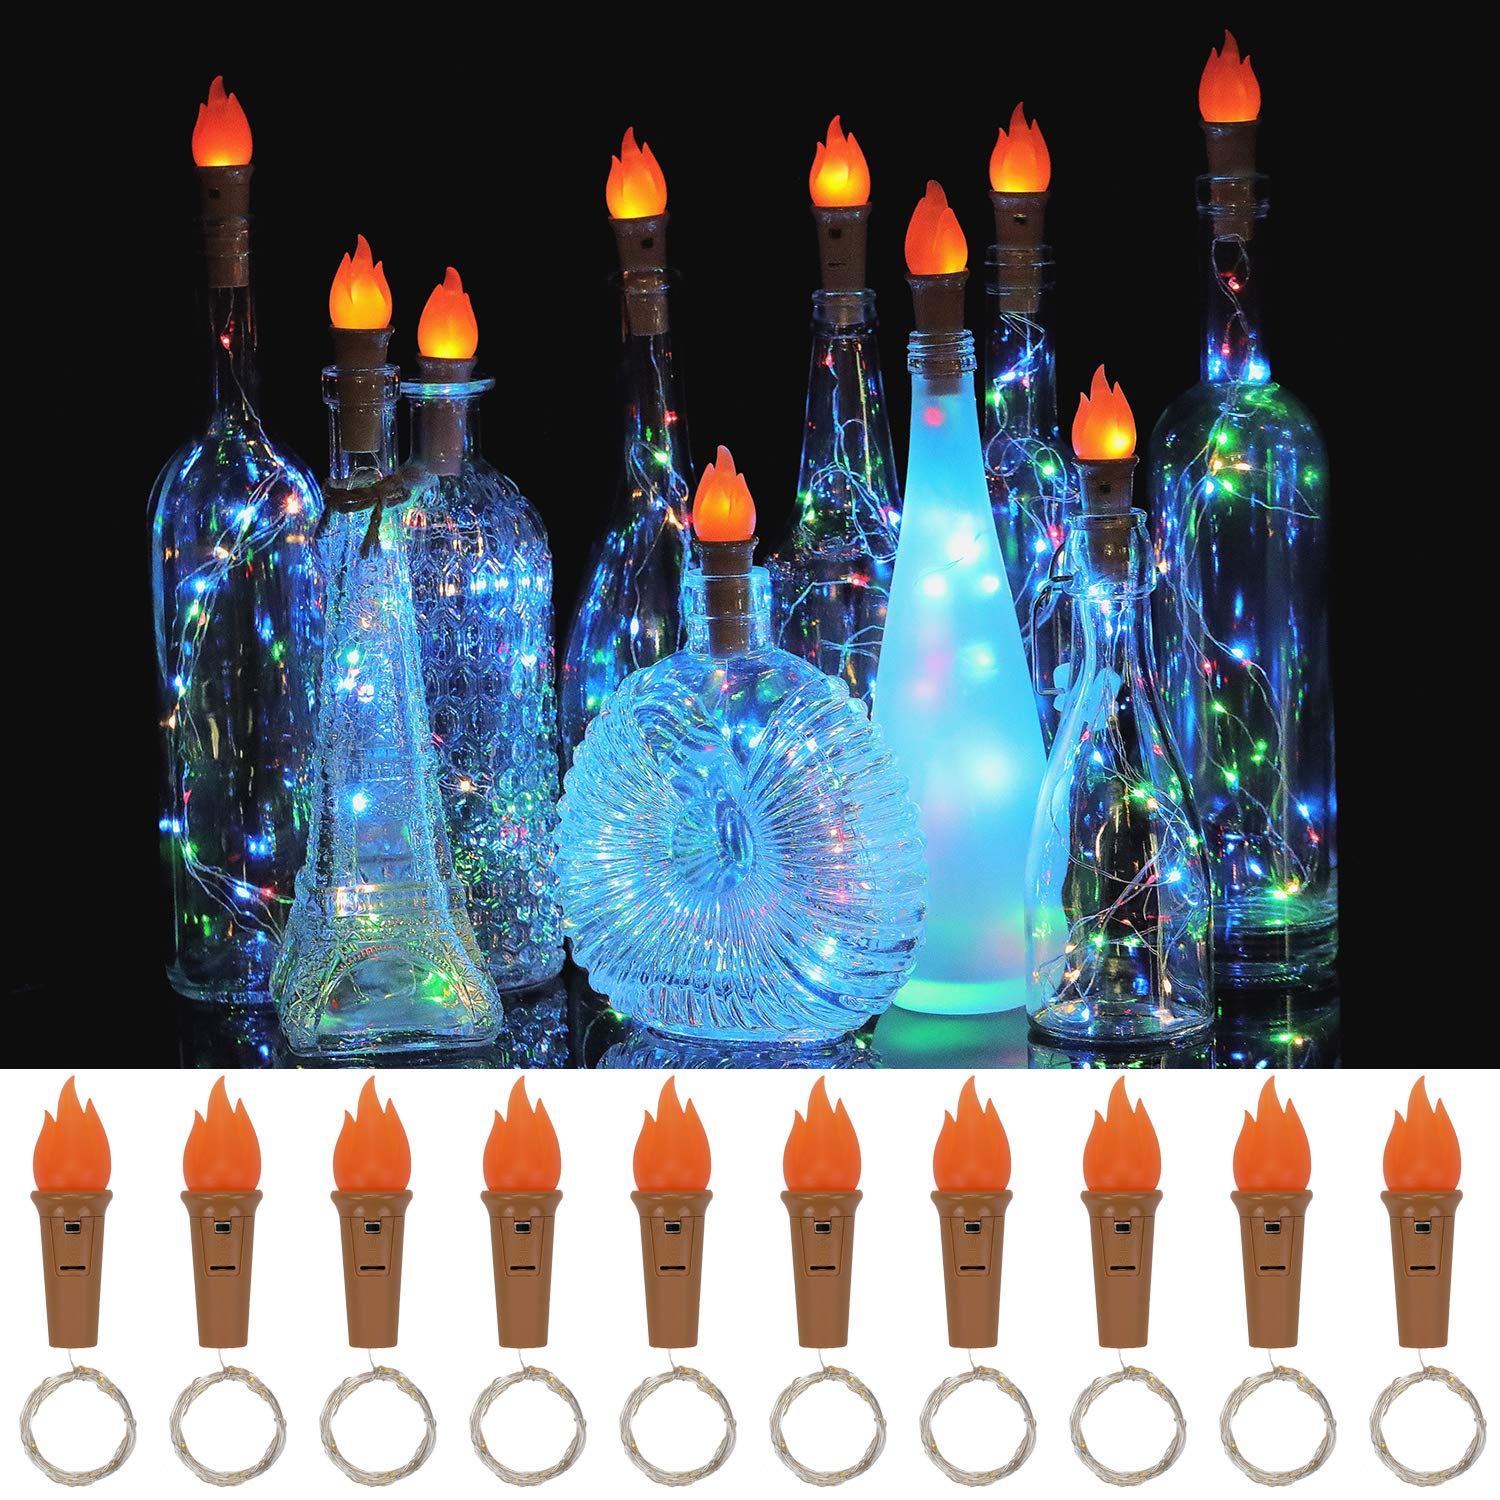 Bottle Lights Torch Top LED Wine Bottle Cork Lights Waterproof Wine Bottle String Lights For Indoor Outdoor Party Wedding Decor